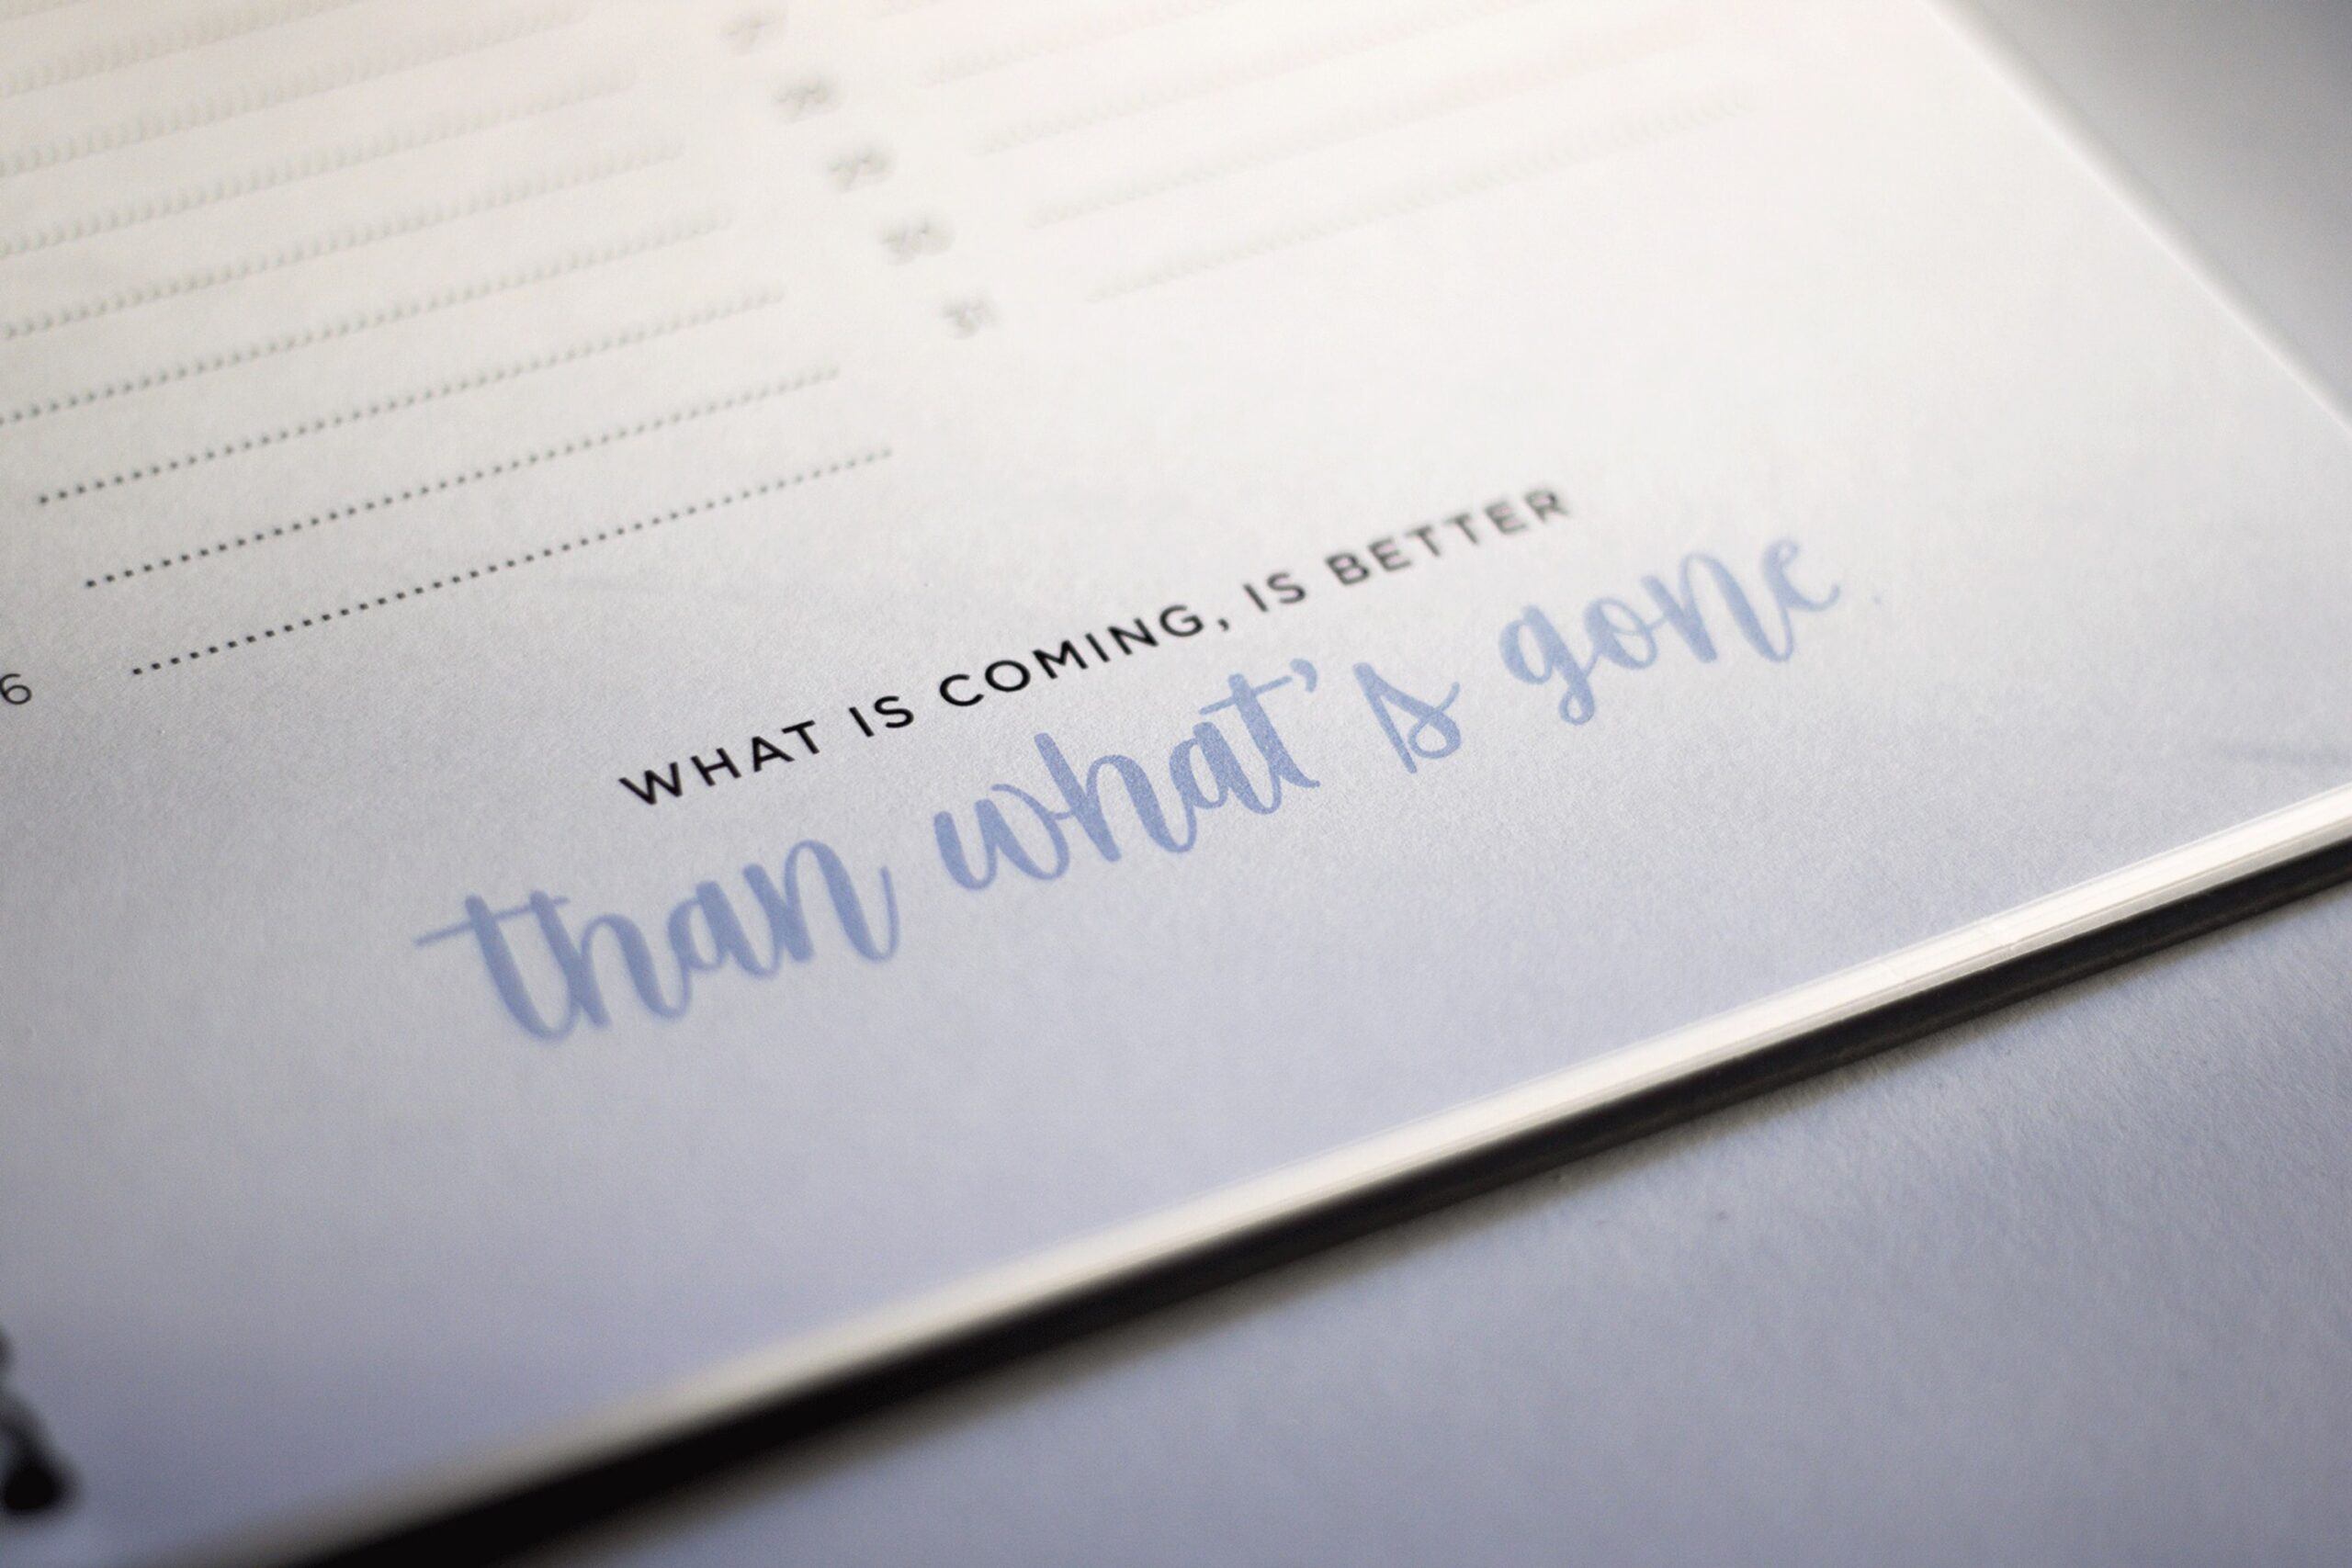 Notepad with one of the best life-after-divorce quotes: What is coming, is better than what's gone.